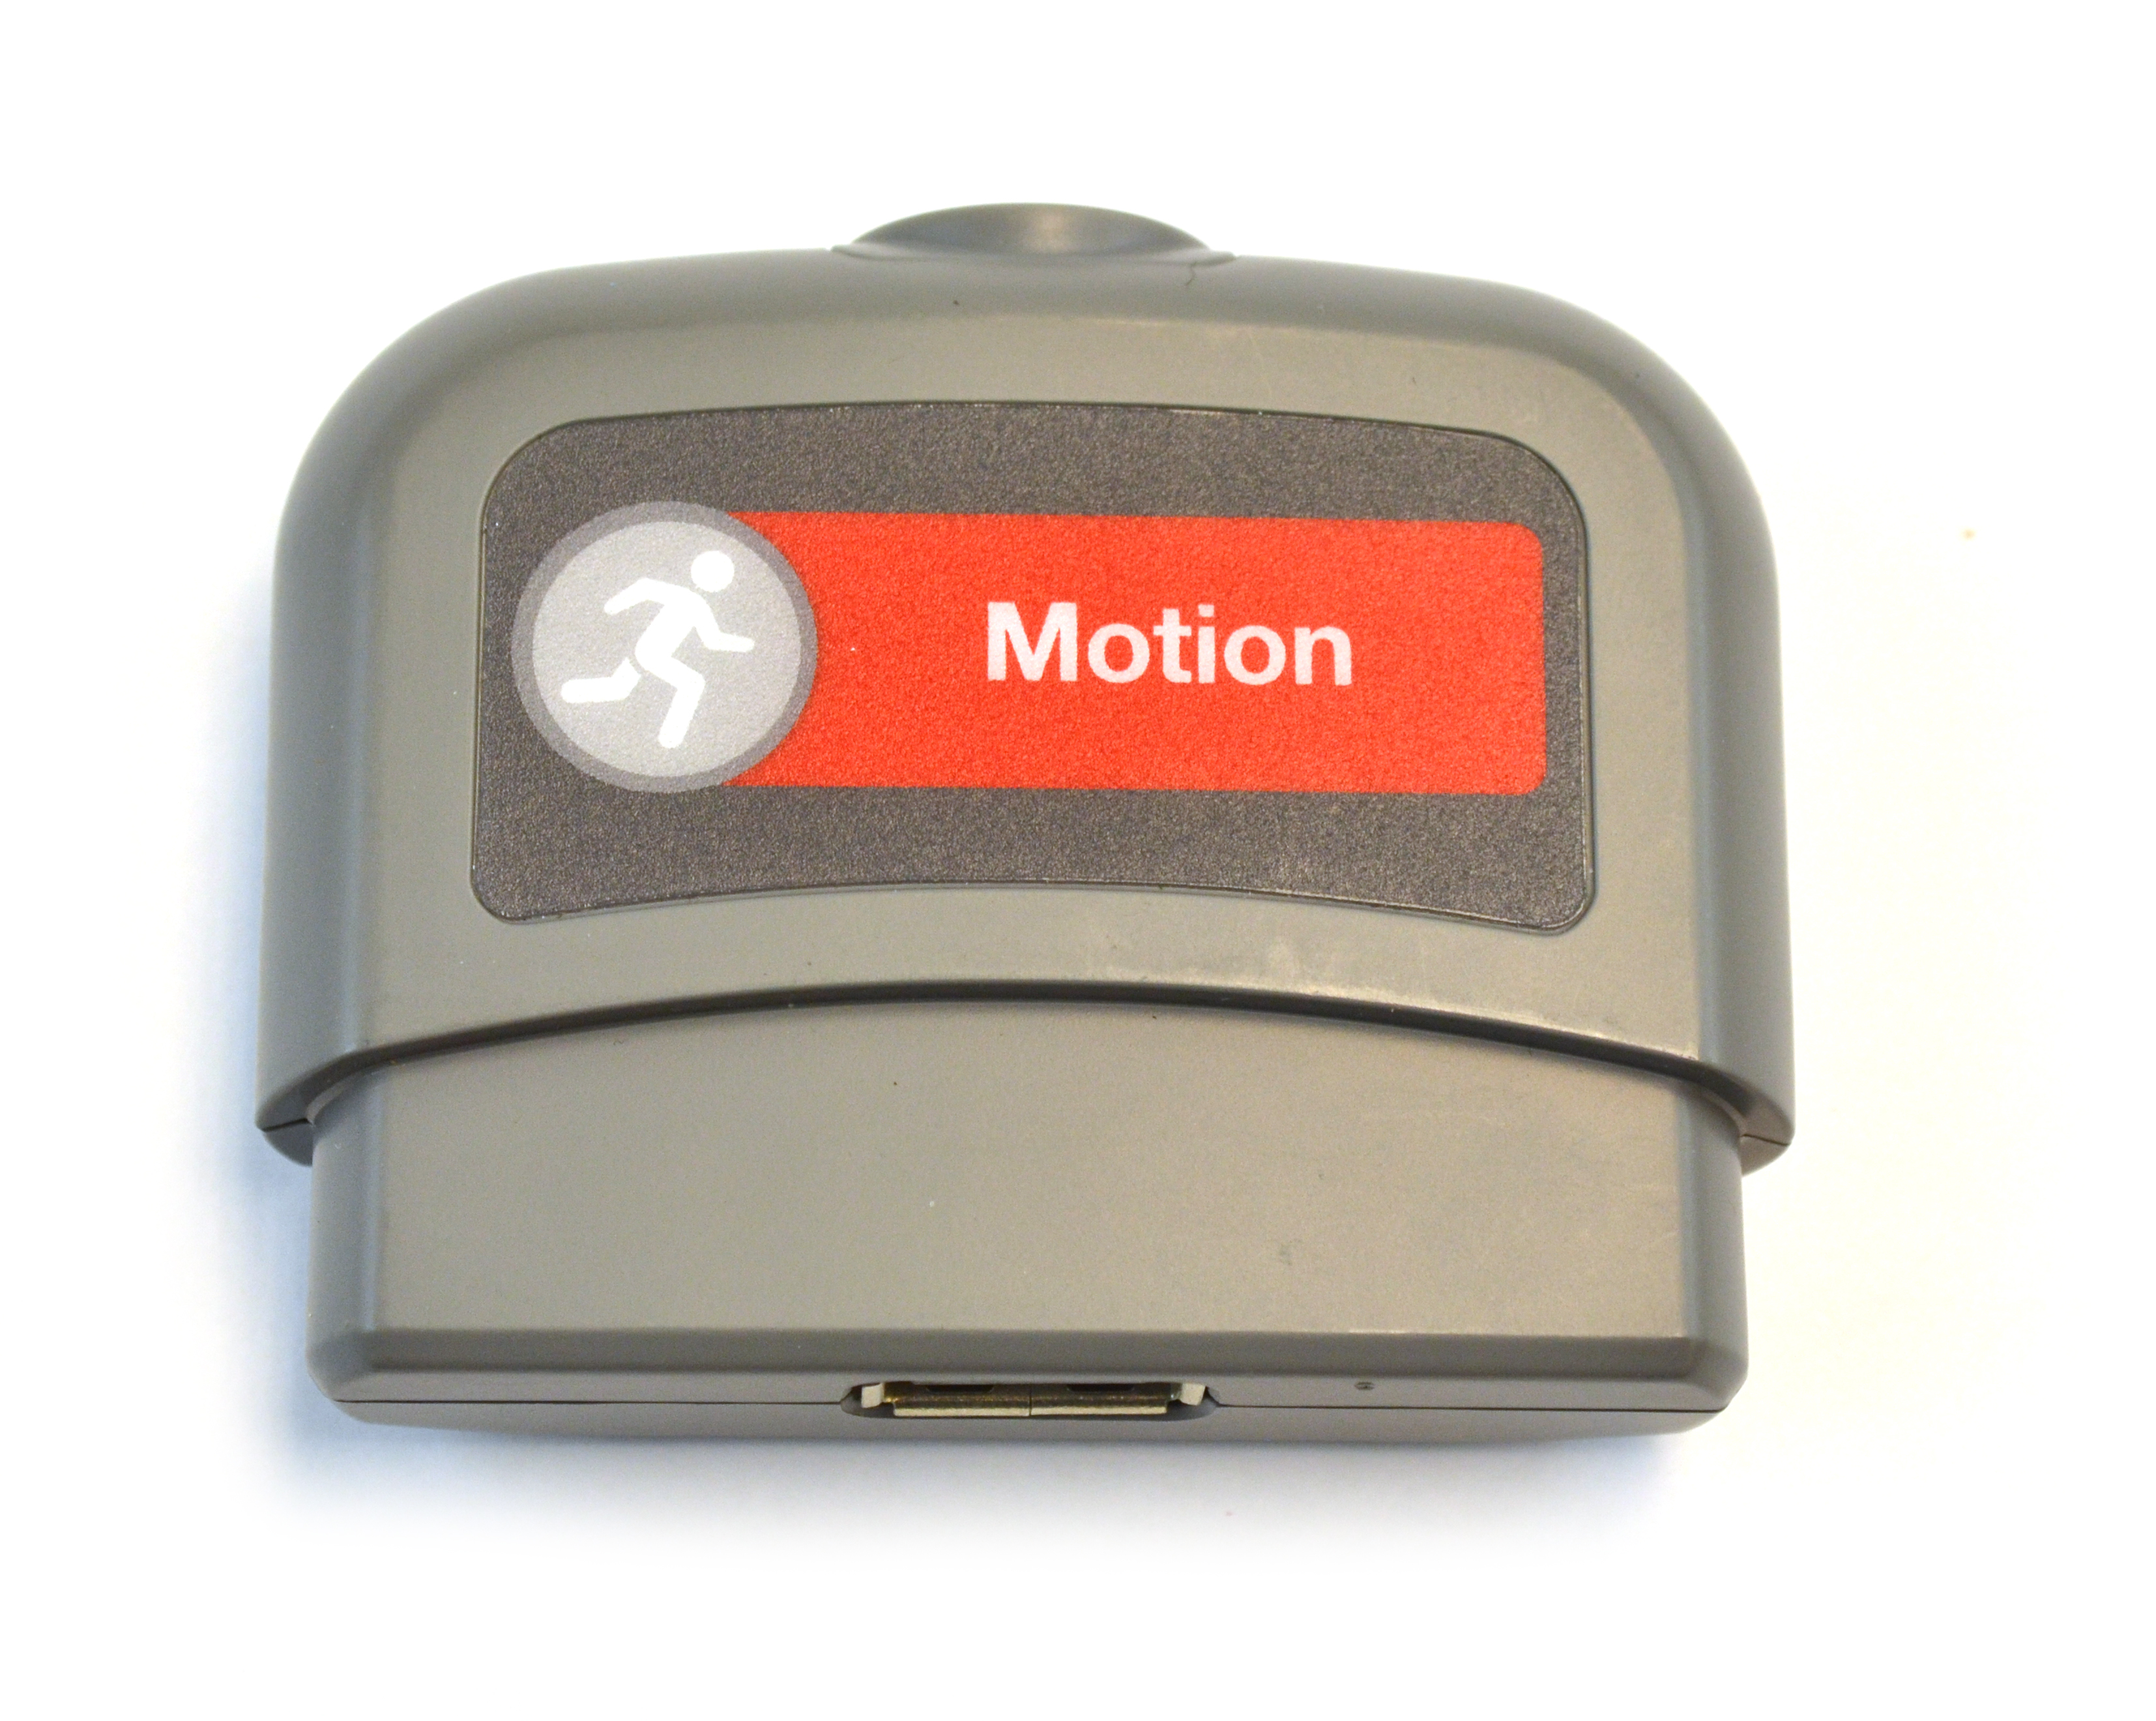 Ward's Motion Sensor Measures Distance and Velocity, Ranges: 0.25 6 m, 10 m s; Resolution: 1mm, 0.02 m s (Add-on to... by Wards